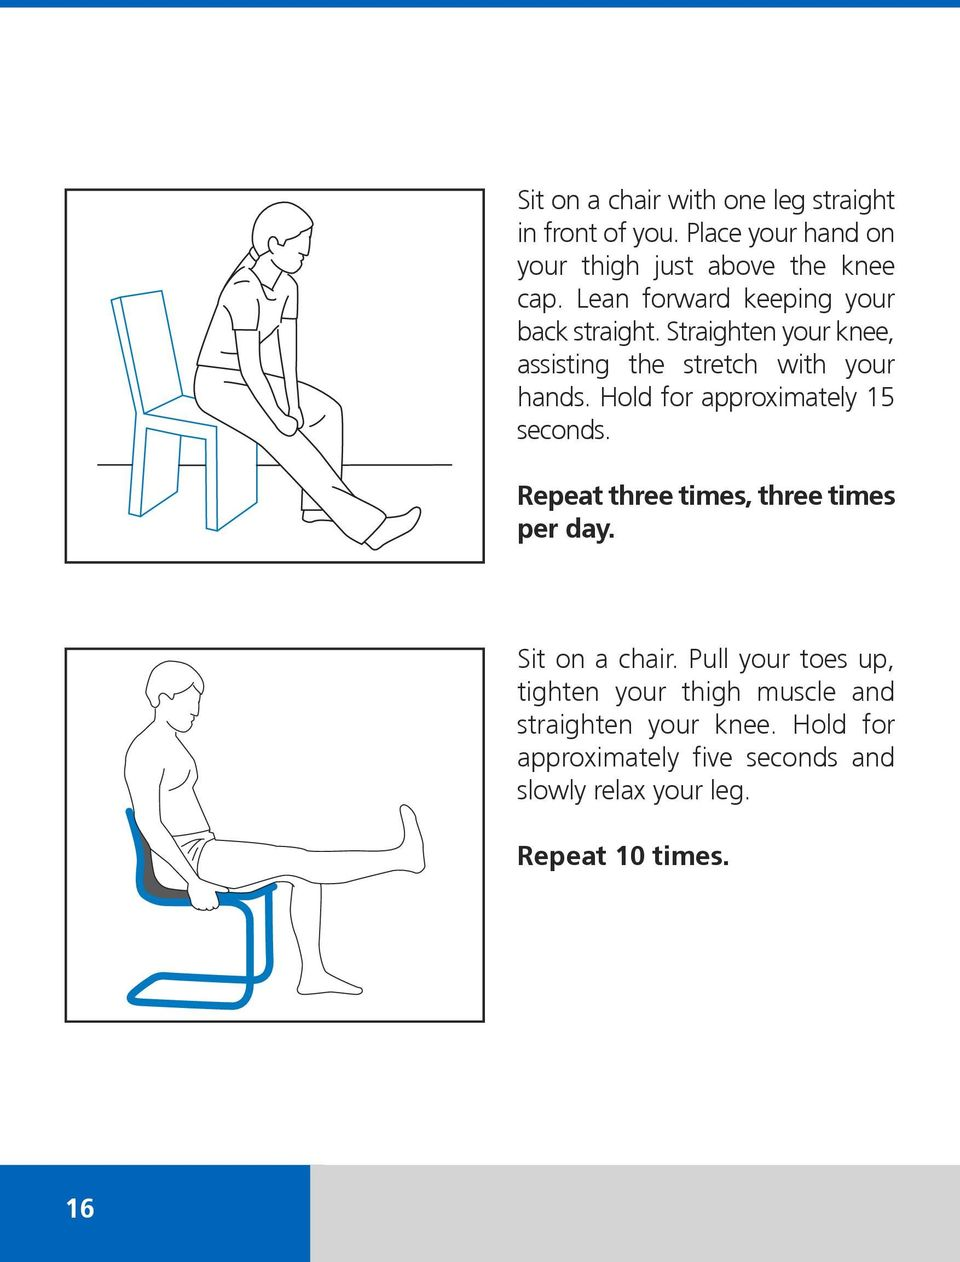 Hold for approximately 15 seconds. Repeat three times, three times per day. Sit on a chair.